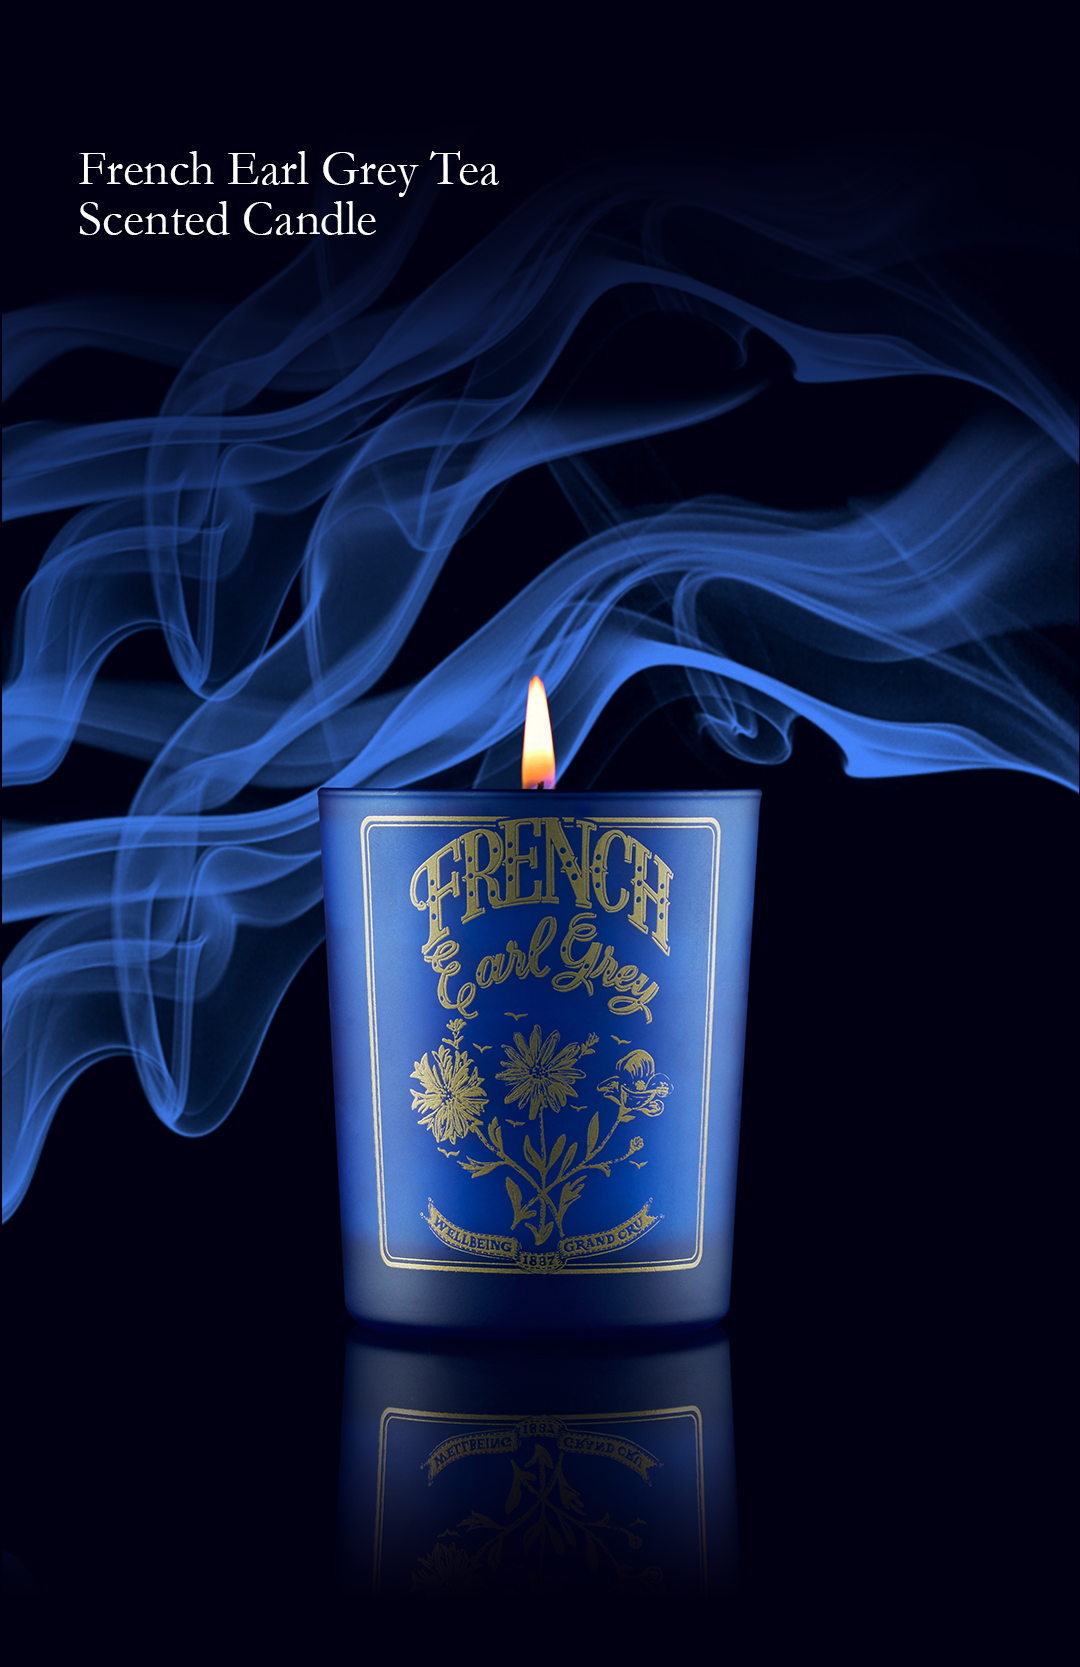 TWG Tea Scented Candles | Valiram Group